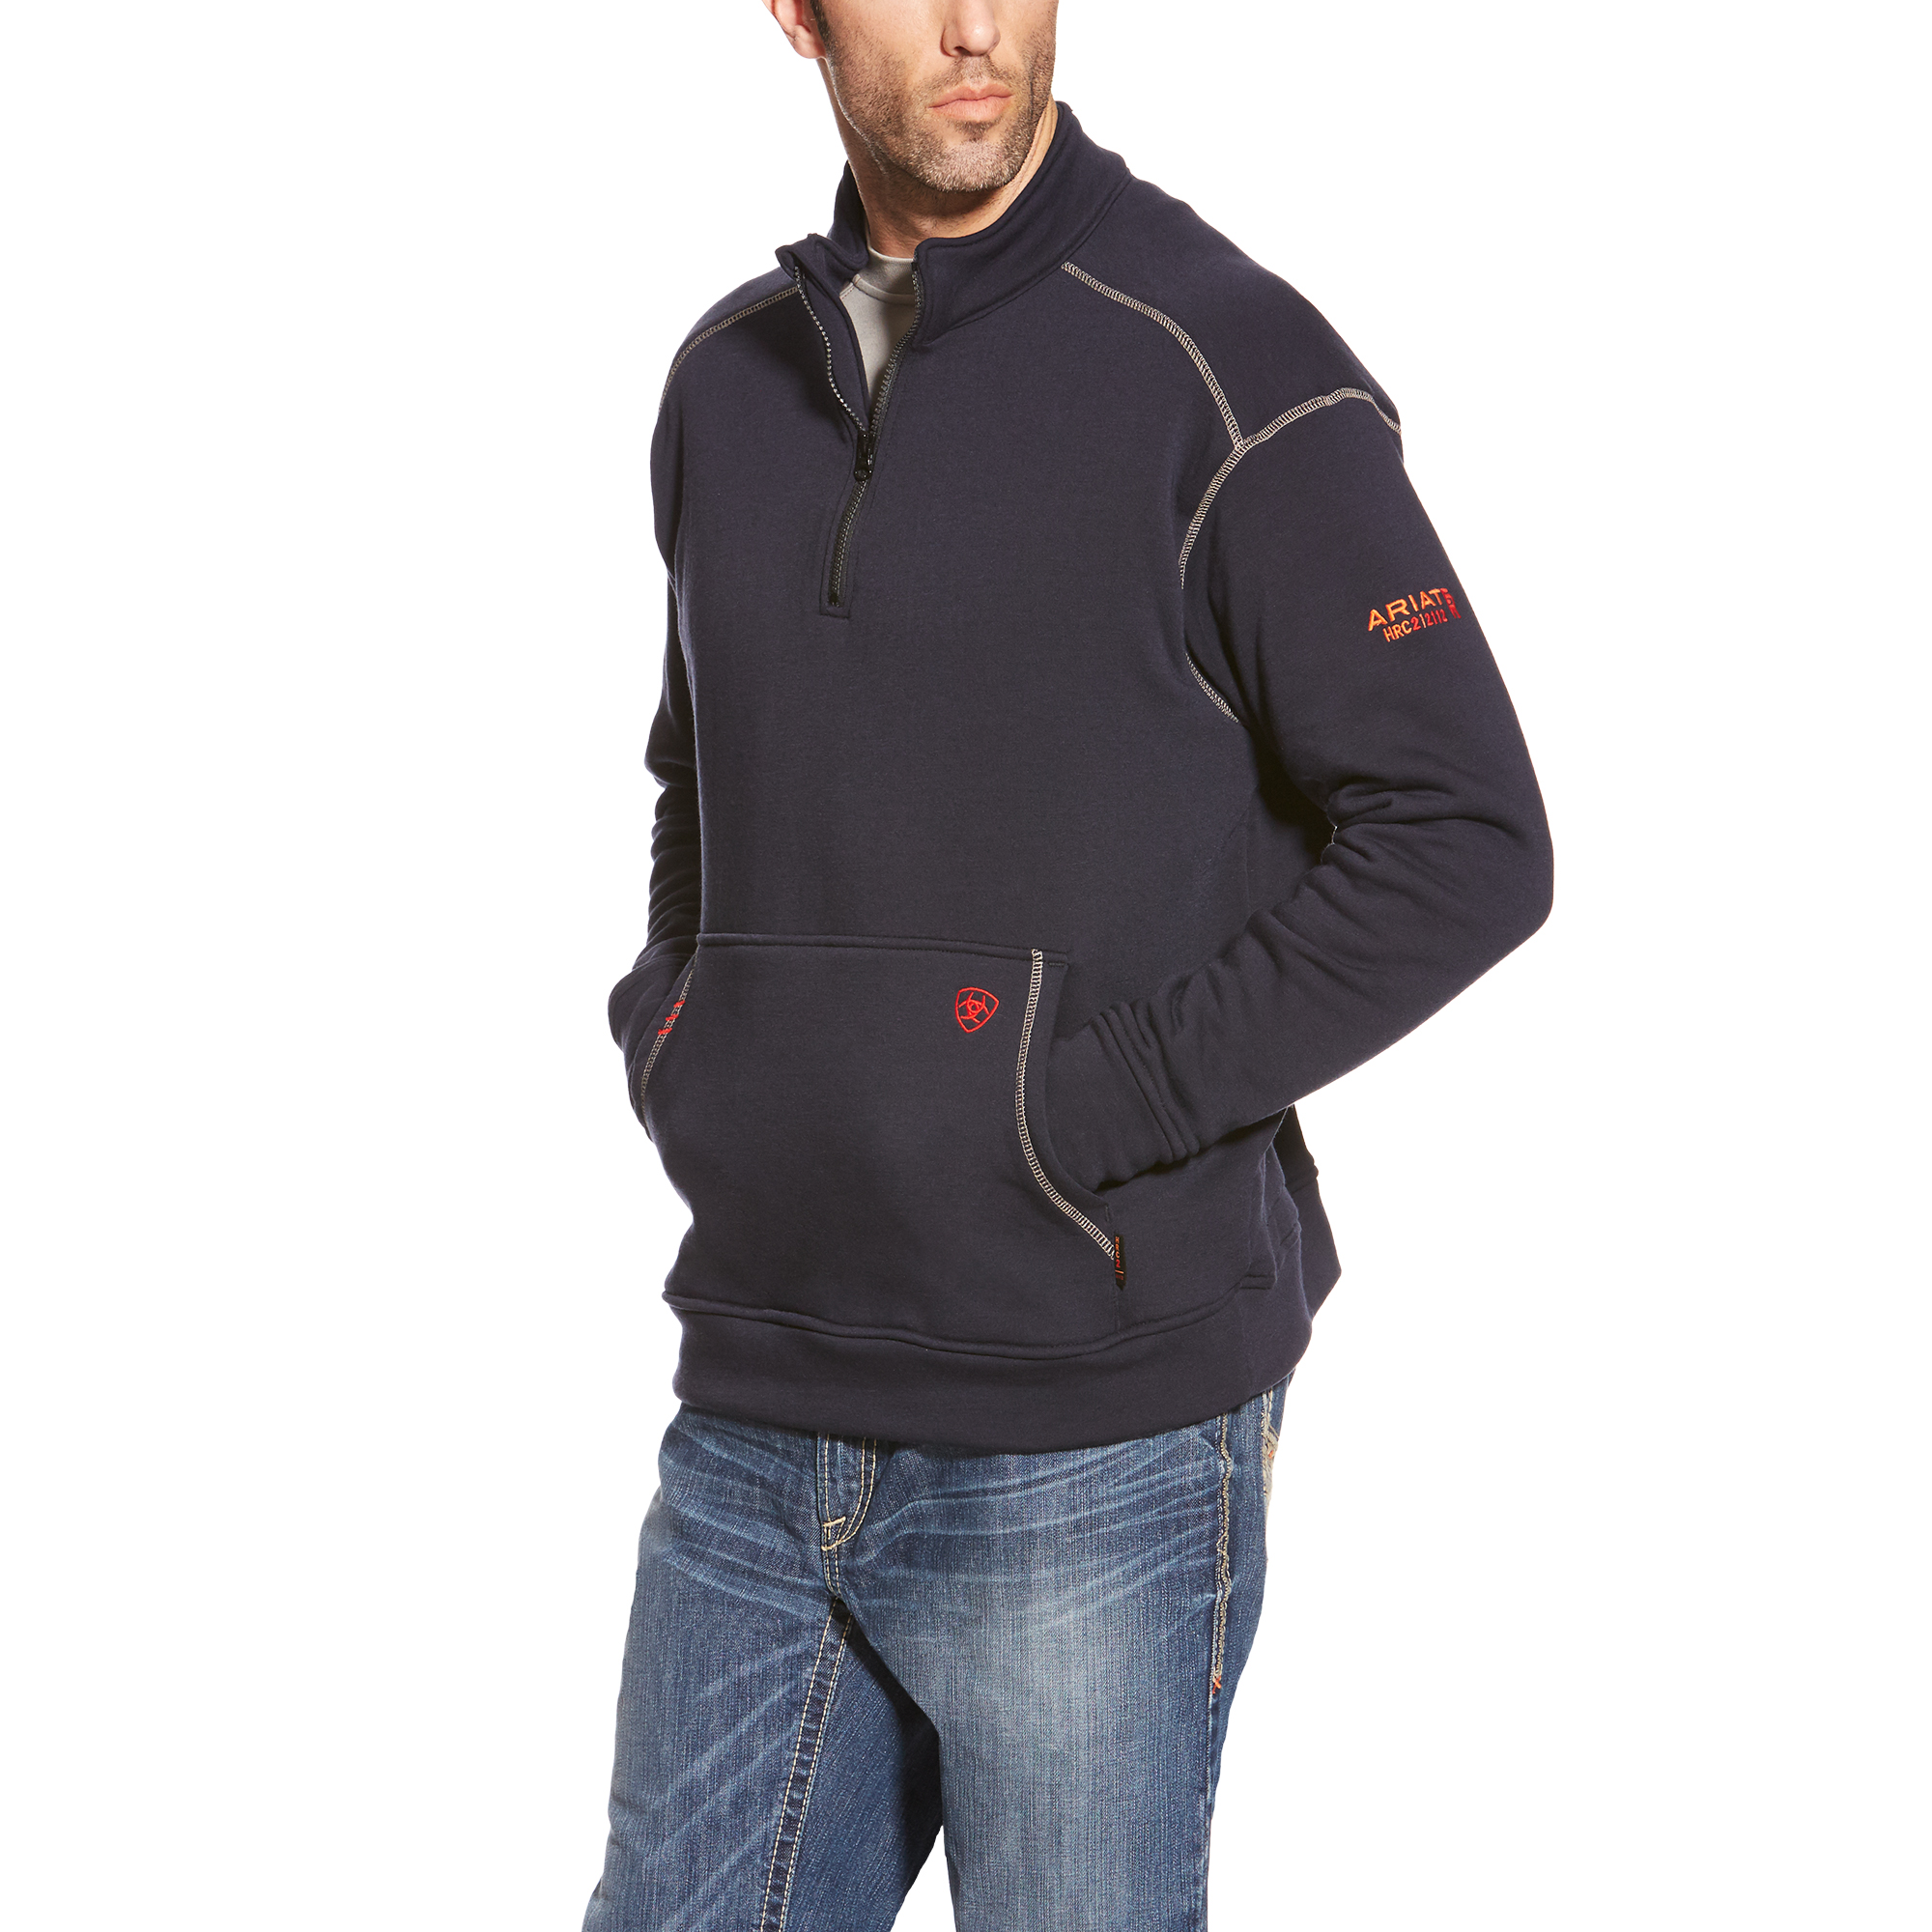 Ariat FR Polartec 1/4 zip Fleece Navy-Ariat